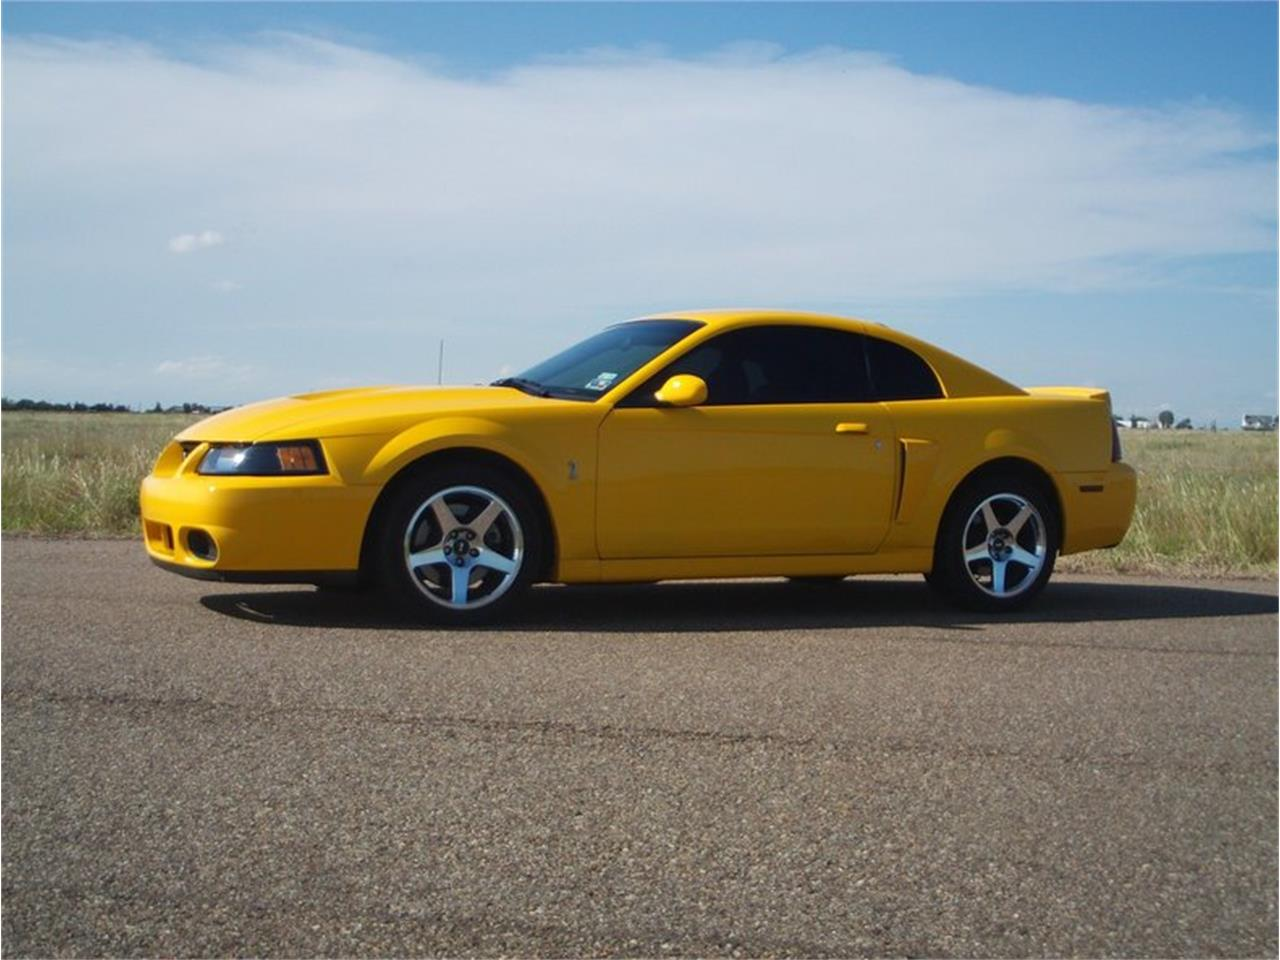 Large picture of 04 mustang svt cobra n2dq